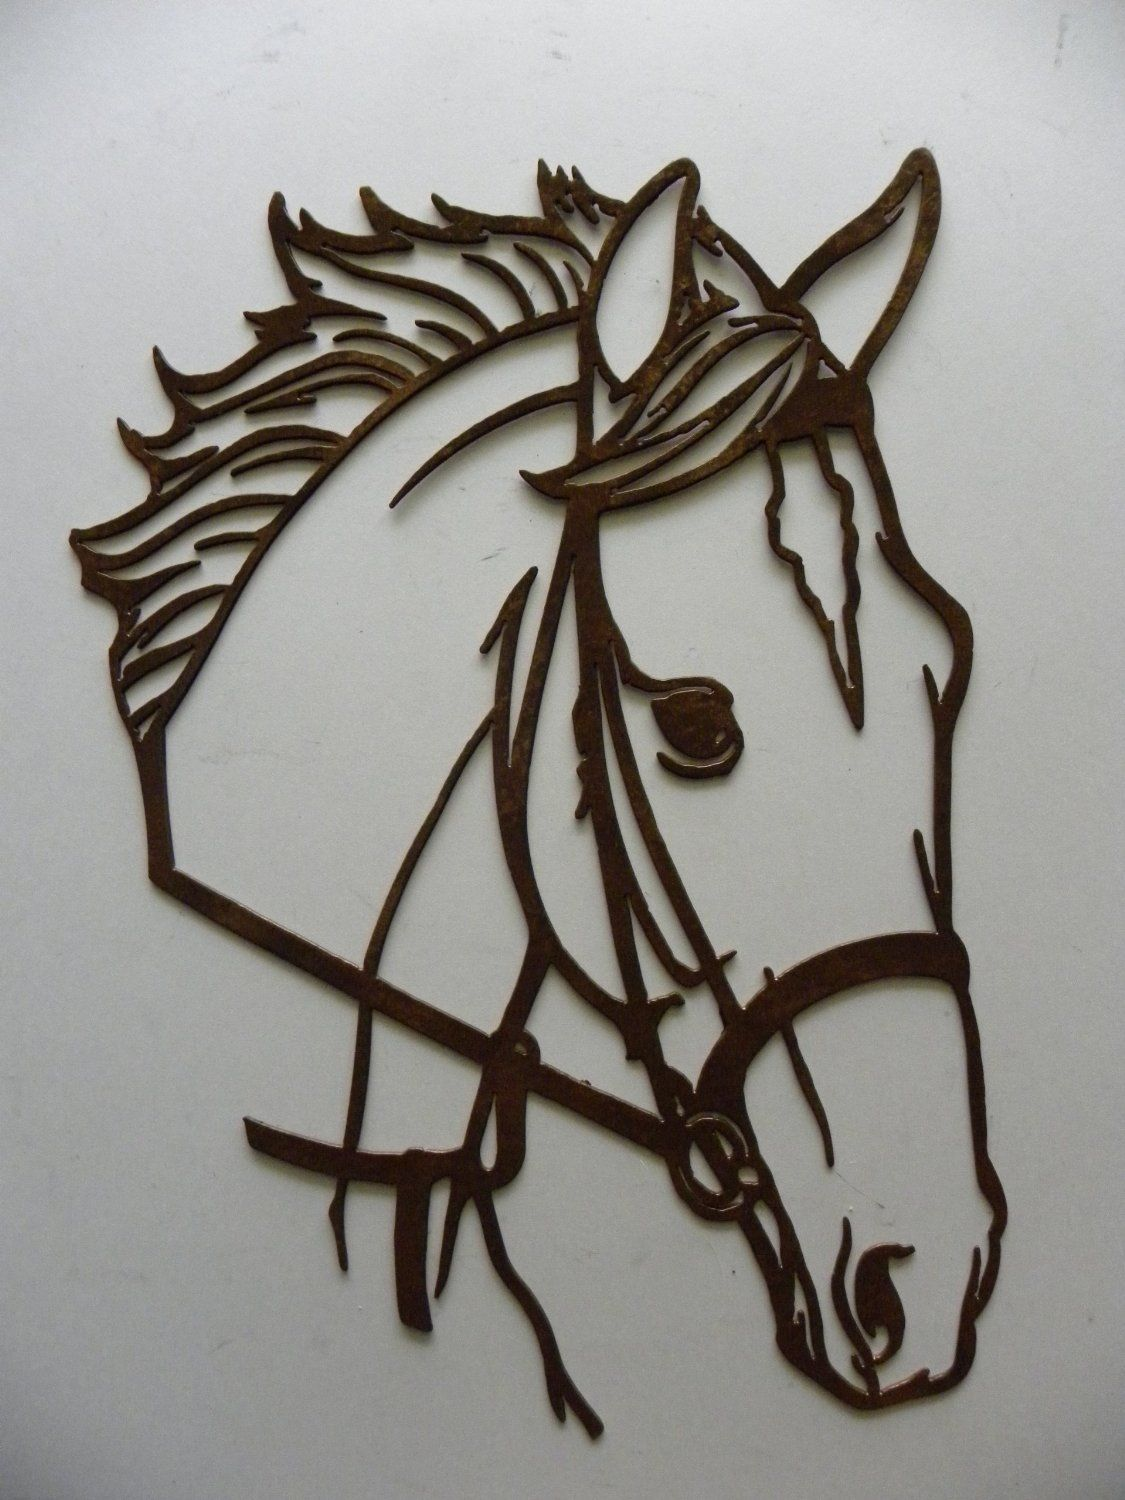 Rustic Outdoor Metal Wall Art Amazon Horse Head Metal Wall Art Country Rustic Home